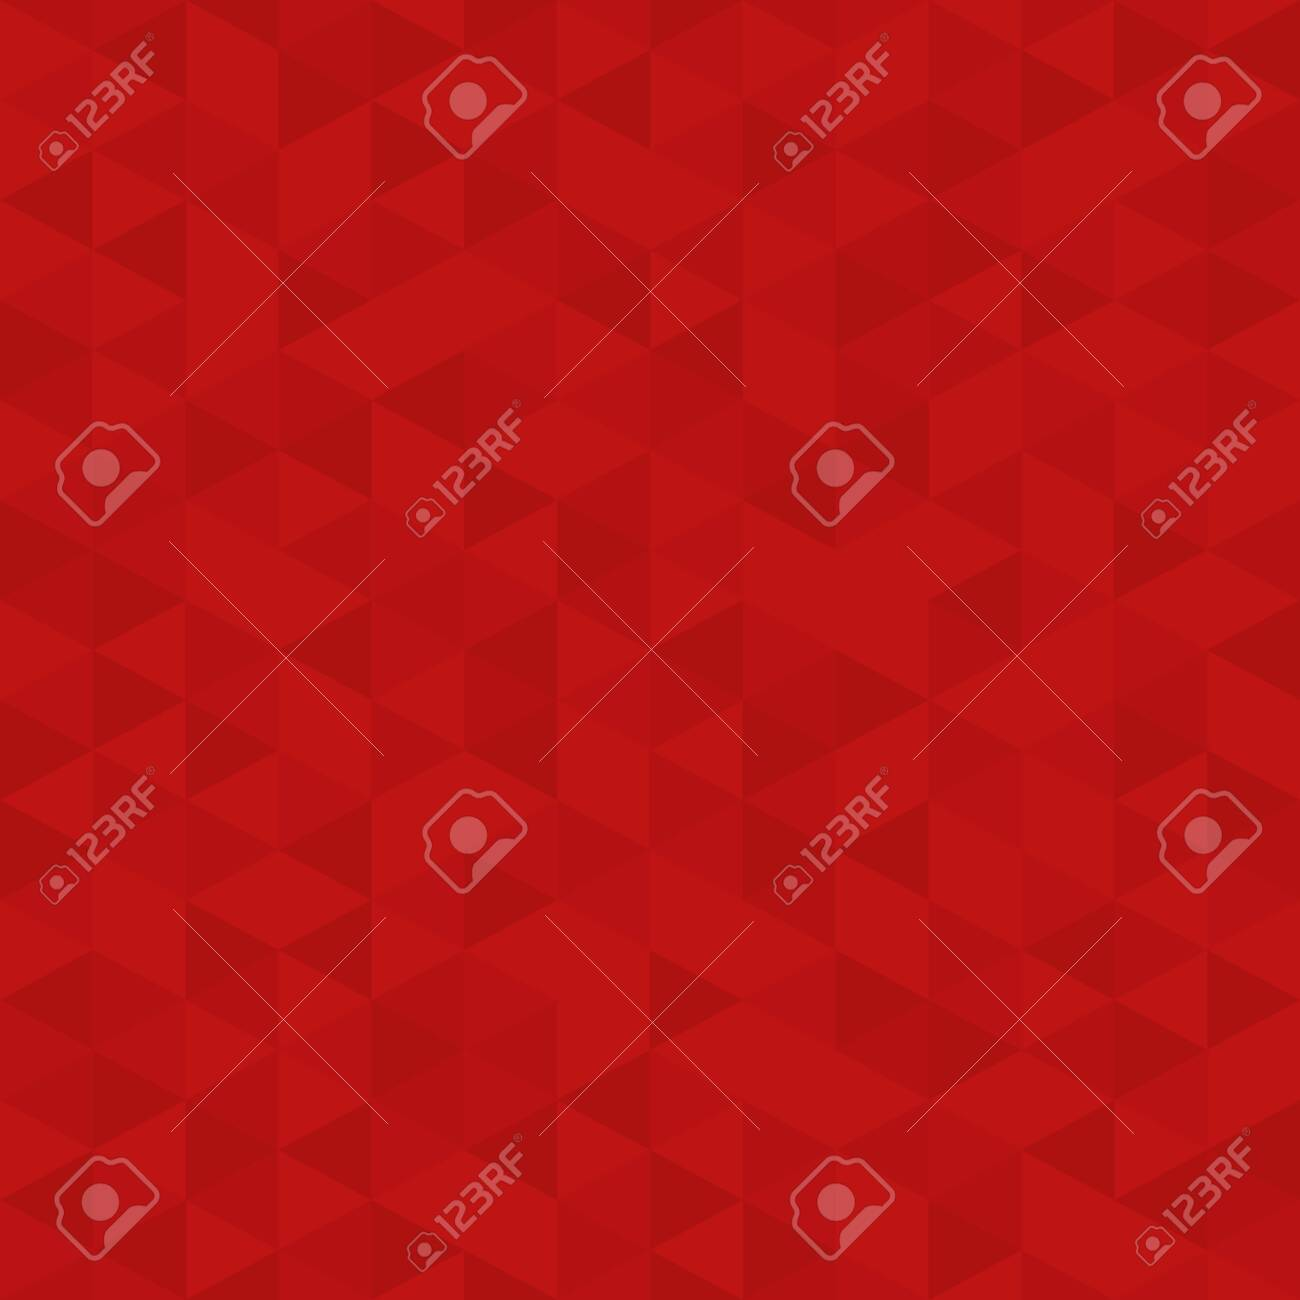 Red Polygon Mosaic Bacground, Business Design Template, Low Poly Style Illustration - Vector - 128096561